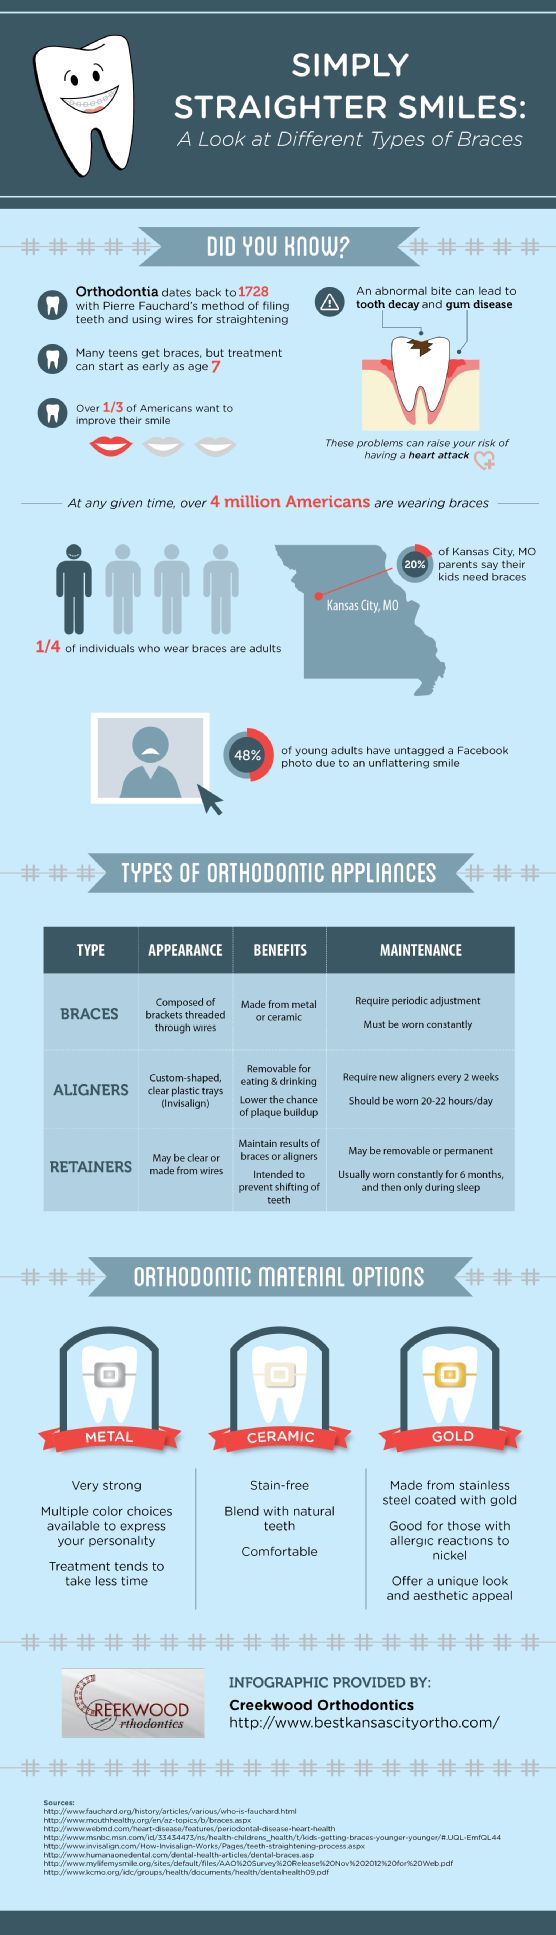 Orthodontic care.  Get more tips for straightening teeth with different types of braces on this orthodontist infographic.